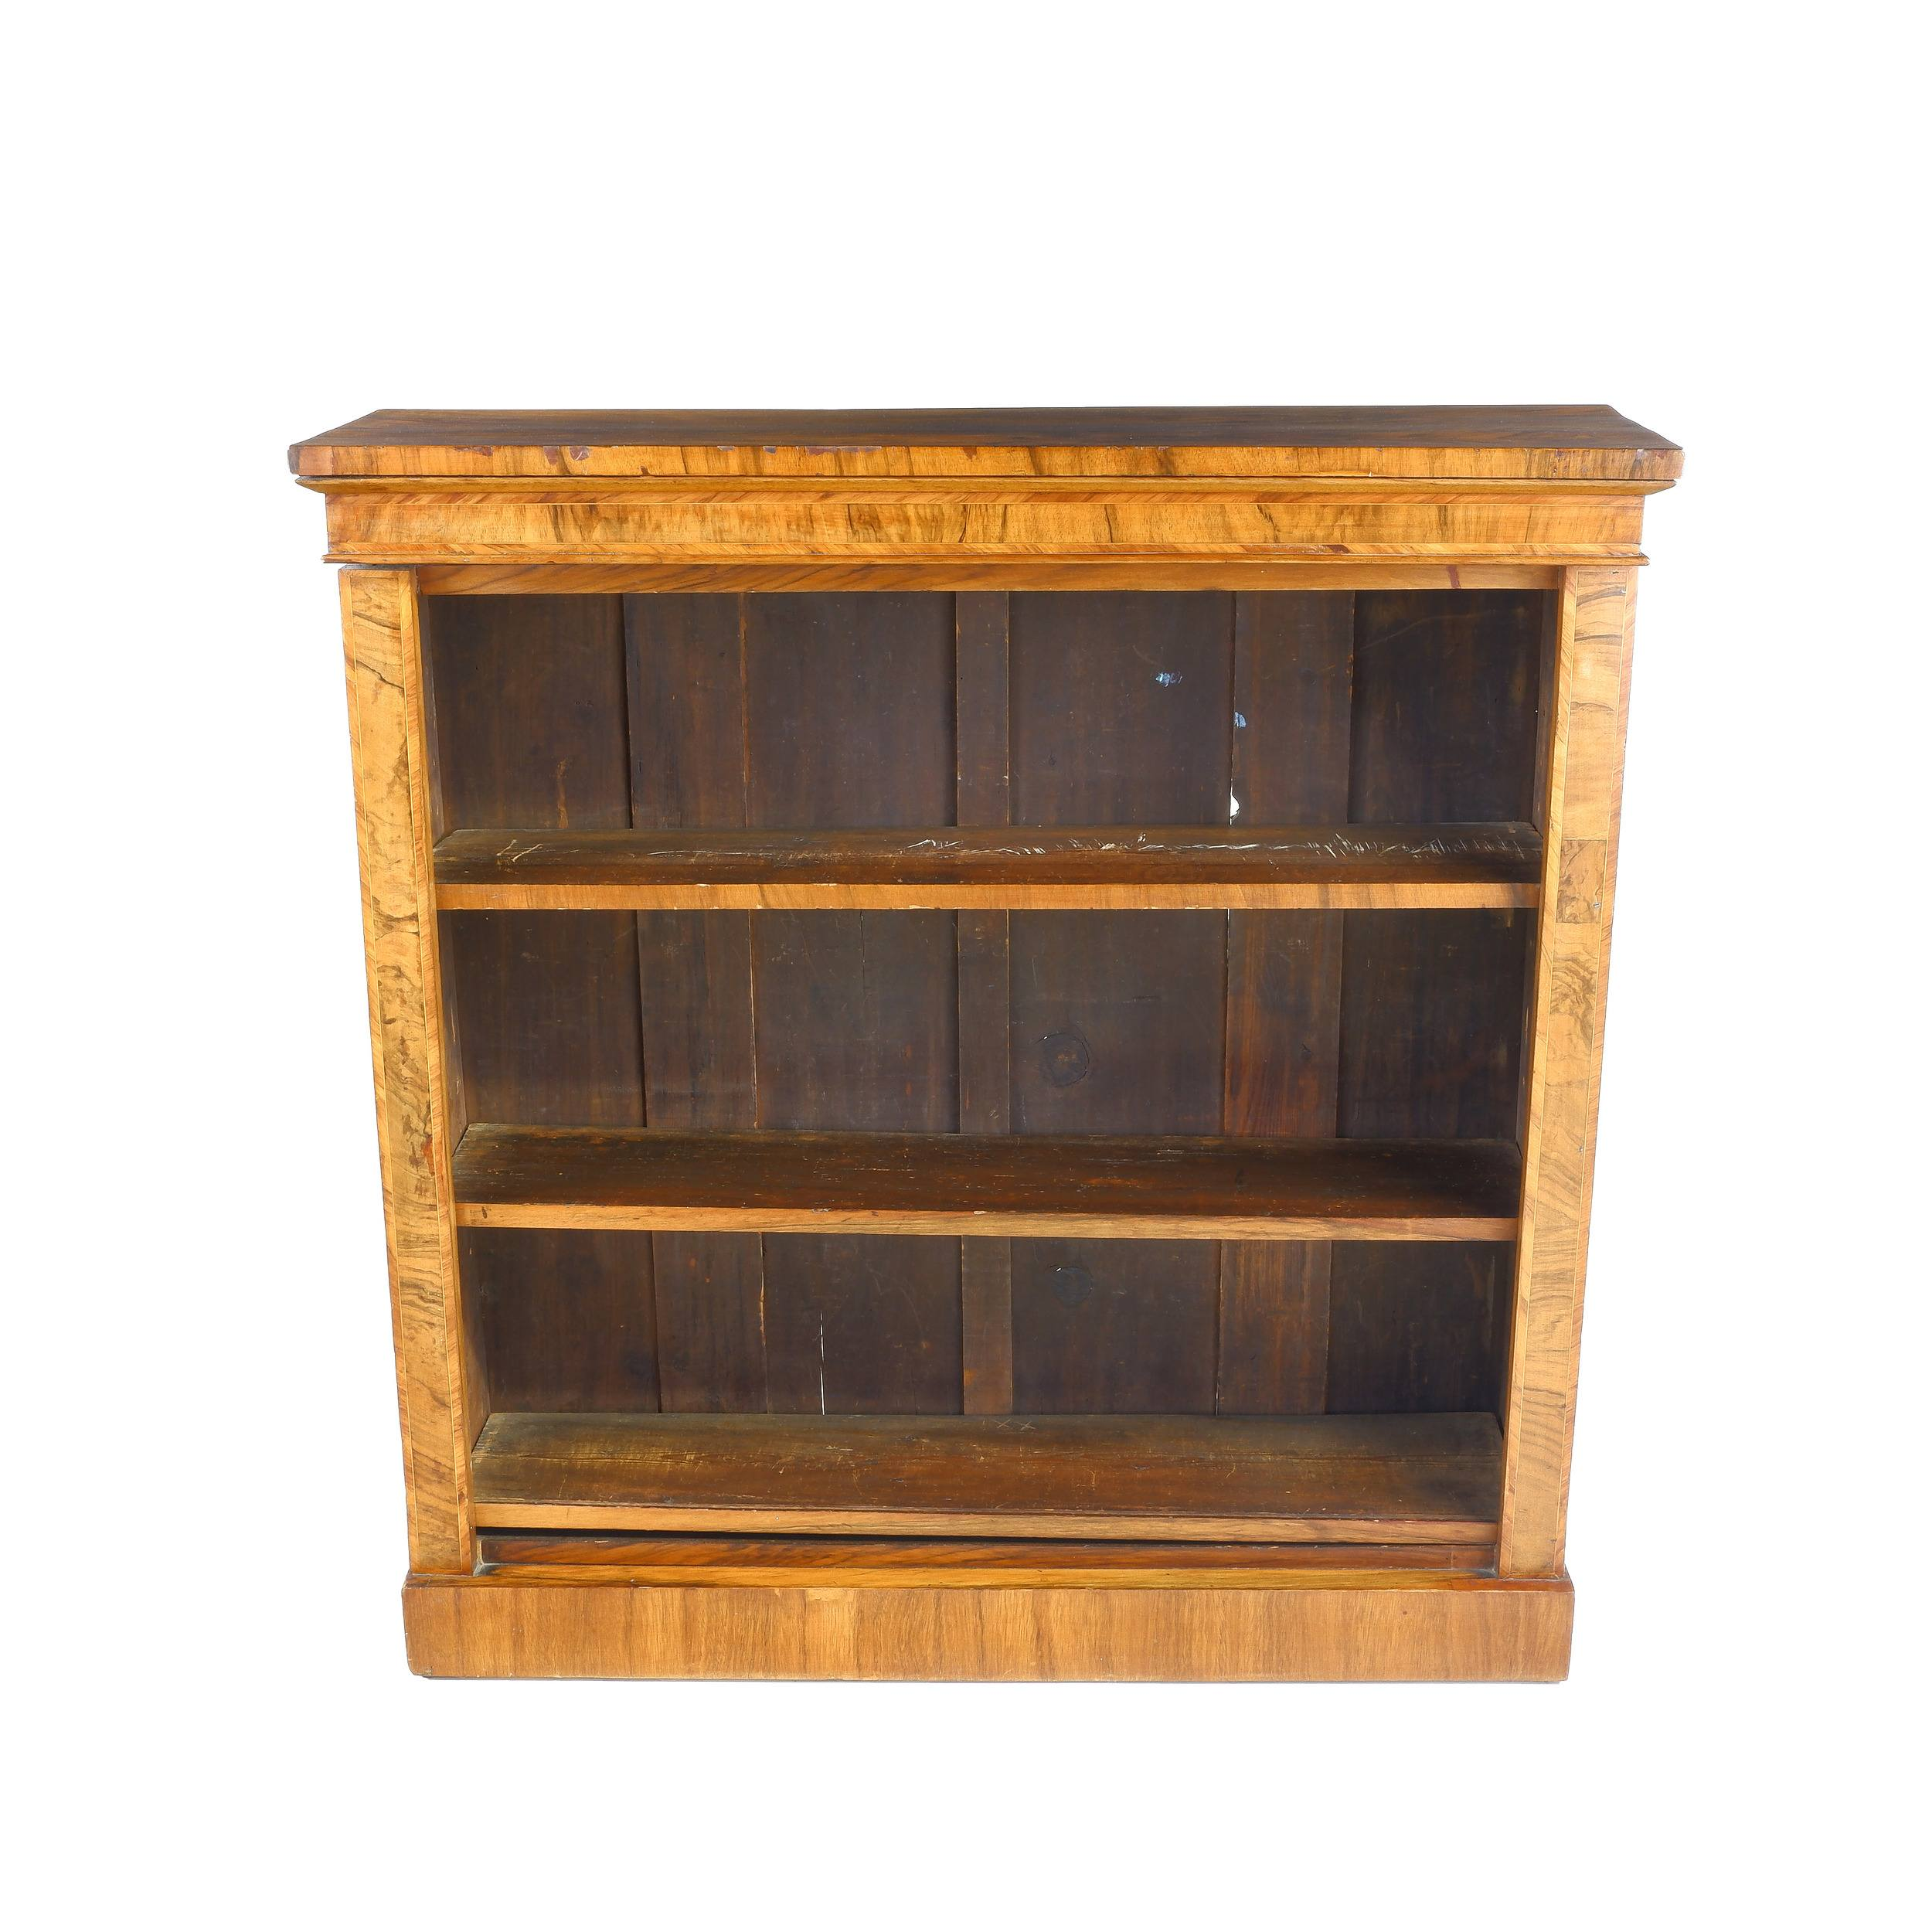 'William IV String Inlaid and Crossbanded Walnut Open Bookcase Circa 1835'